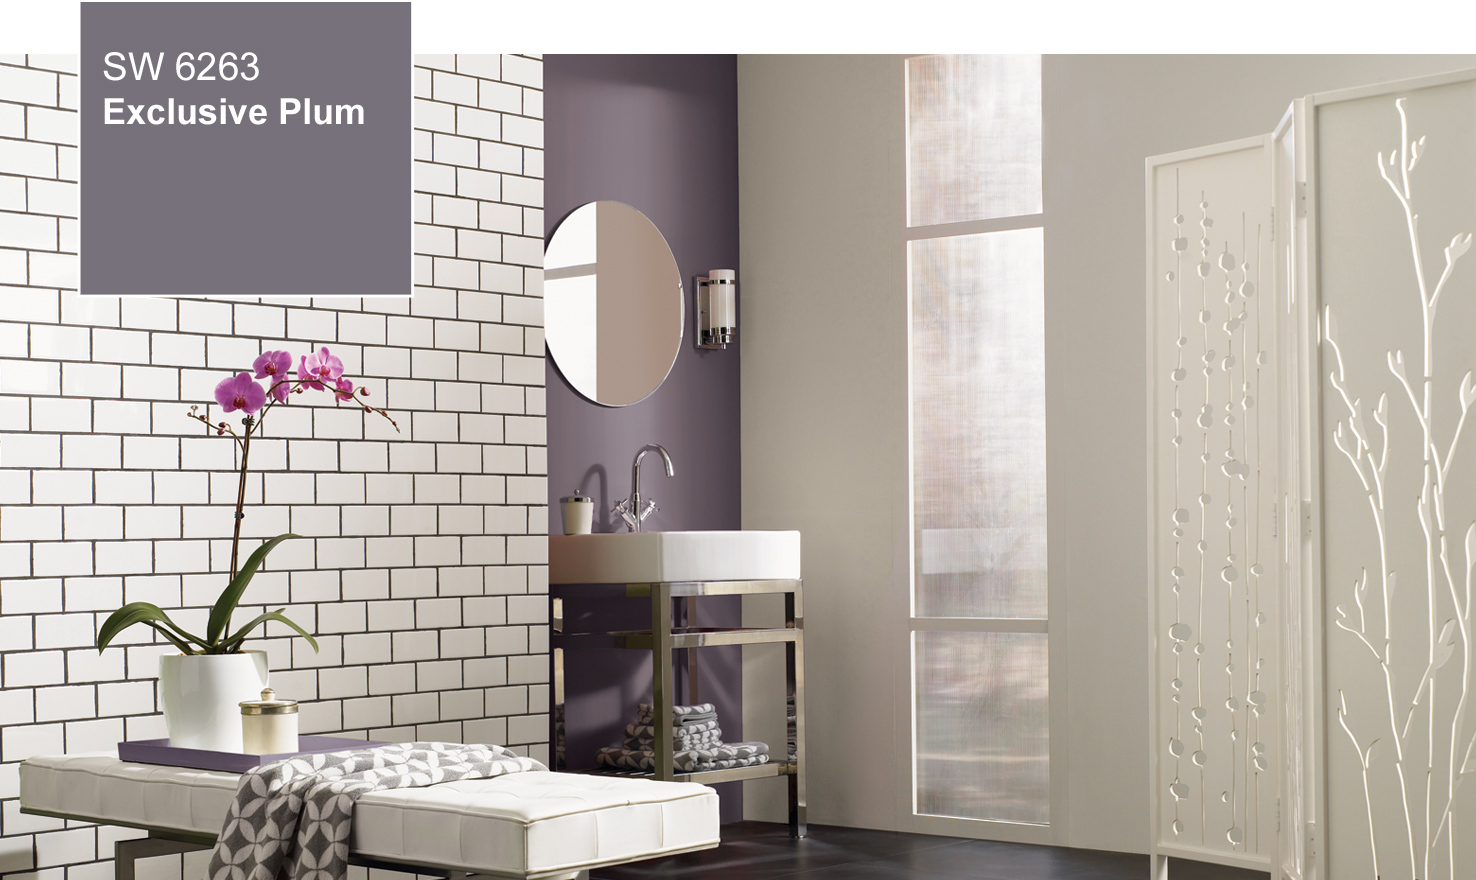 Exclusive Plum used as an accent wall in a bathroom. Sherwin Williams 2014 Color of the Year  Exclusive Plum